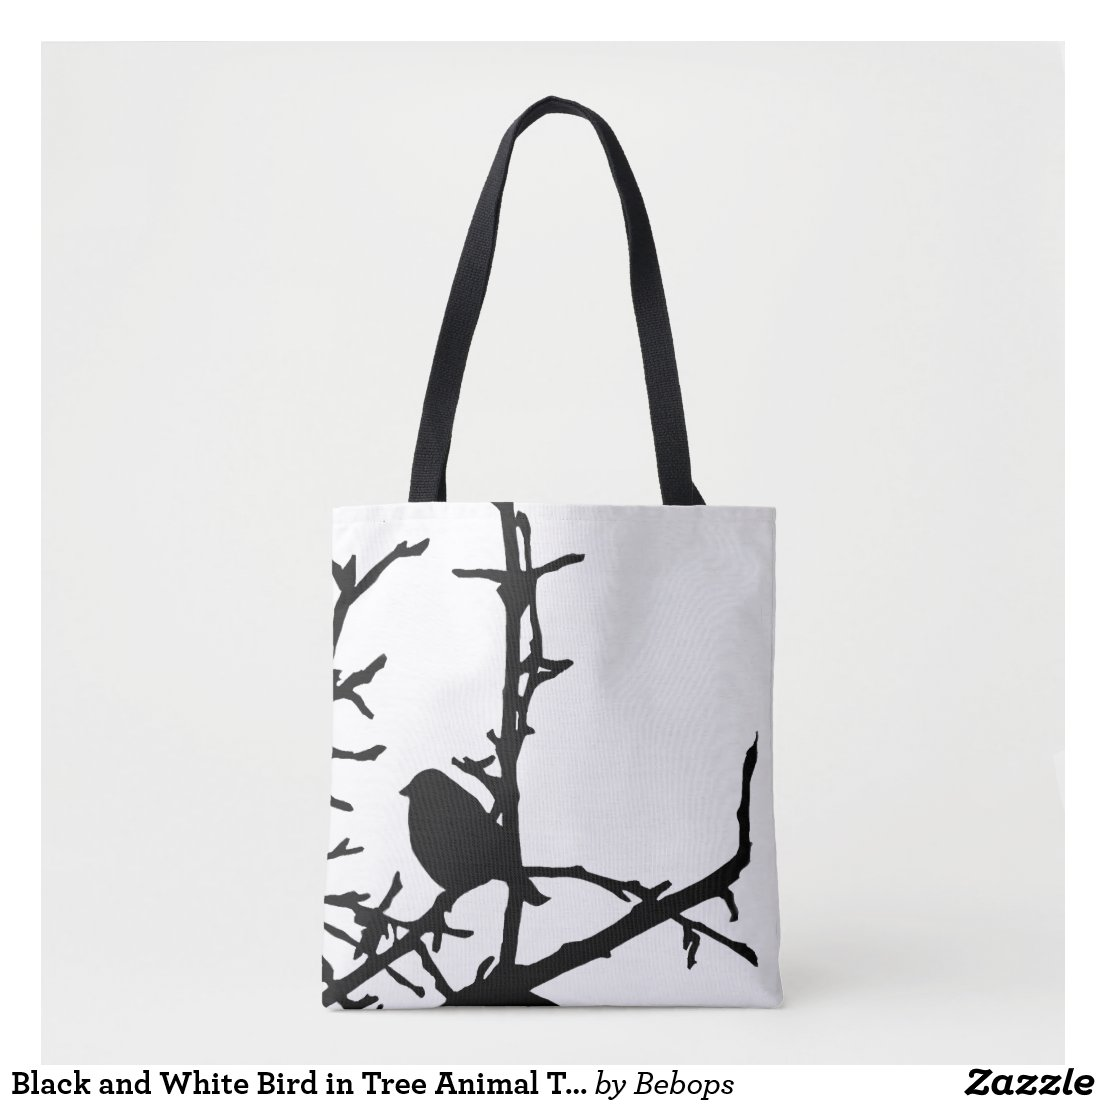 Black and White Bird in Tree Animal Tote Bag